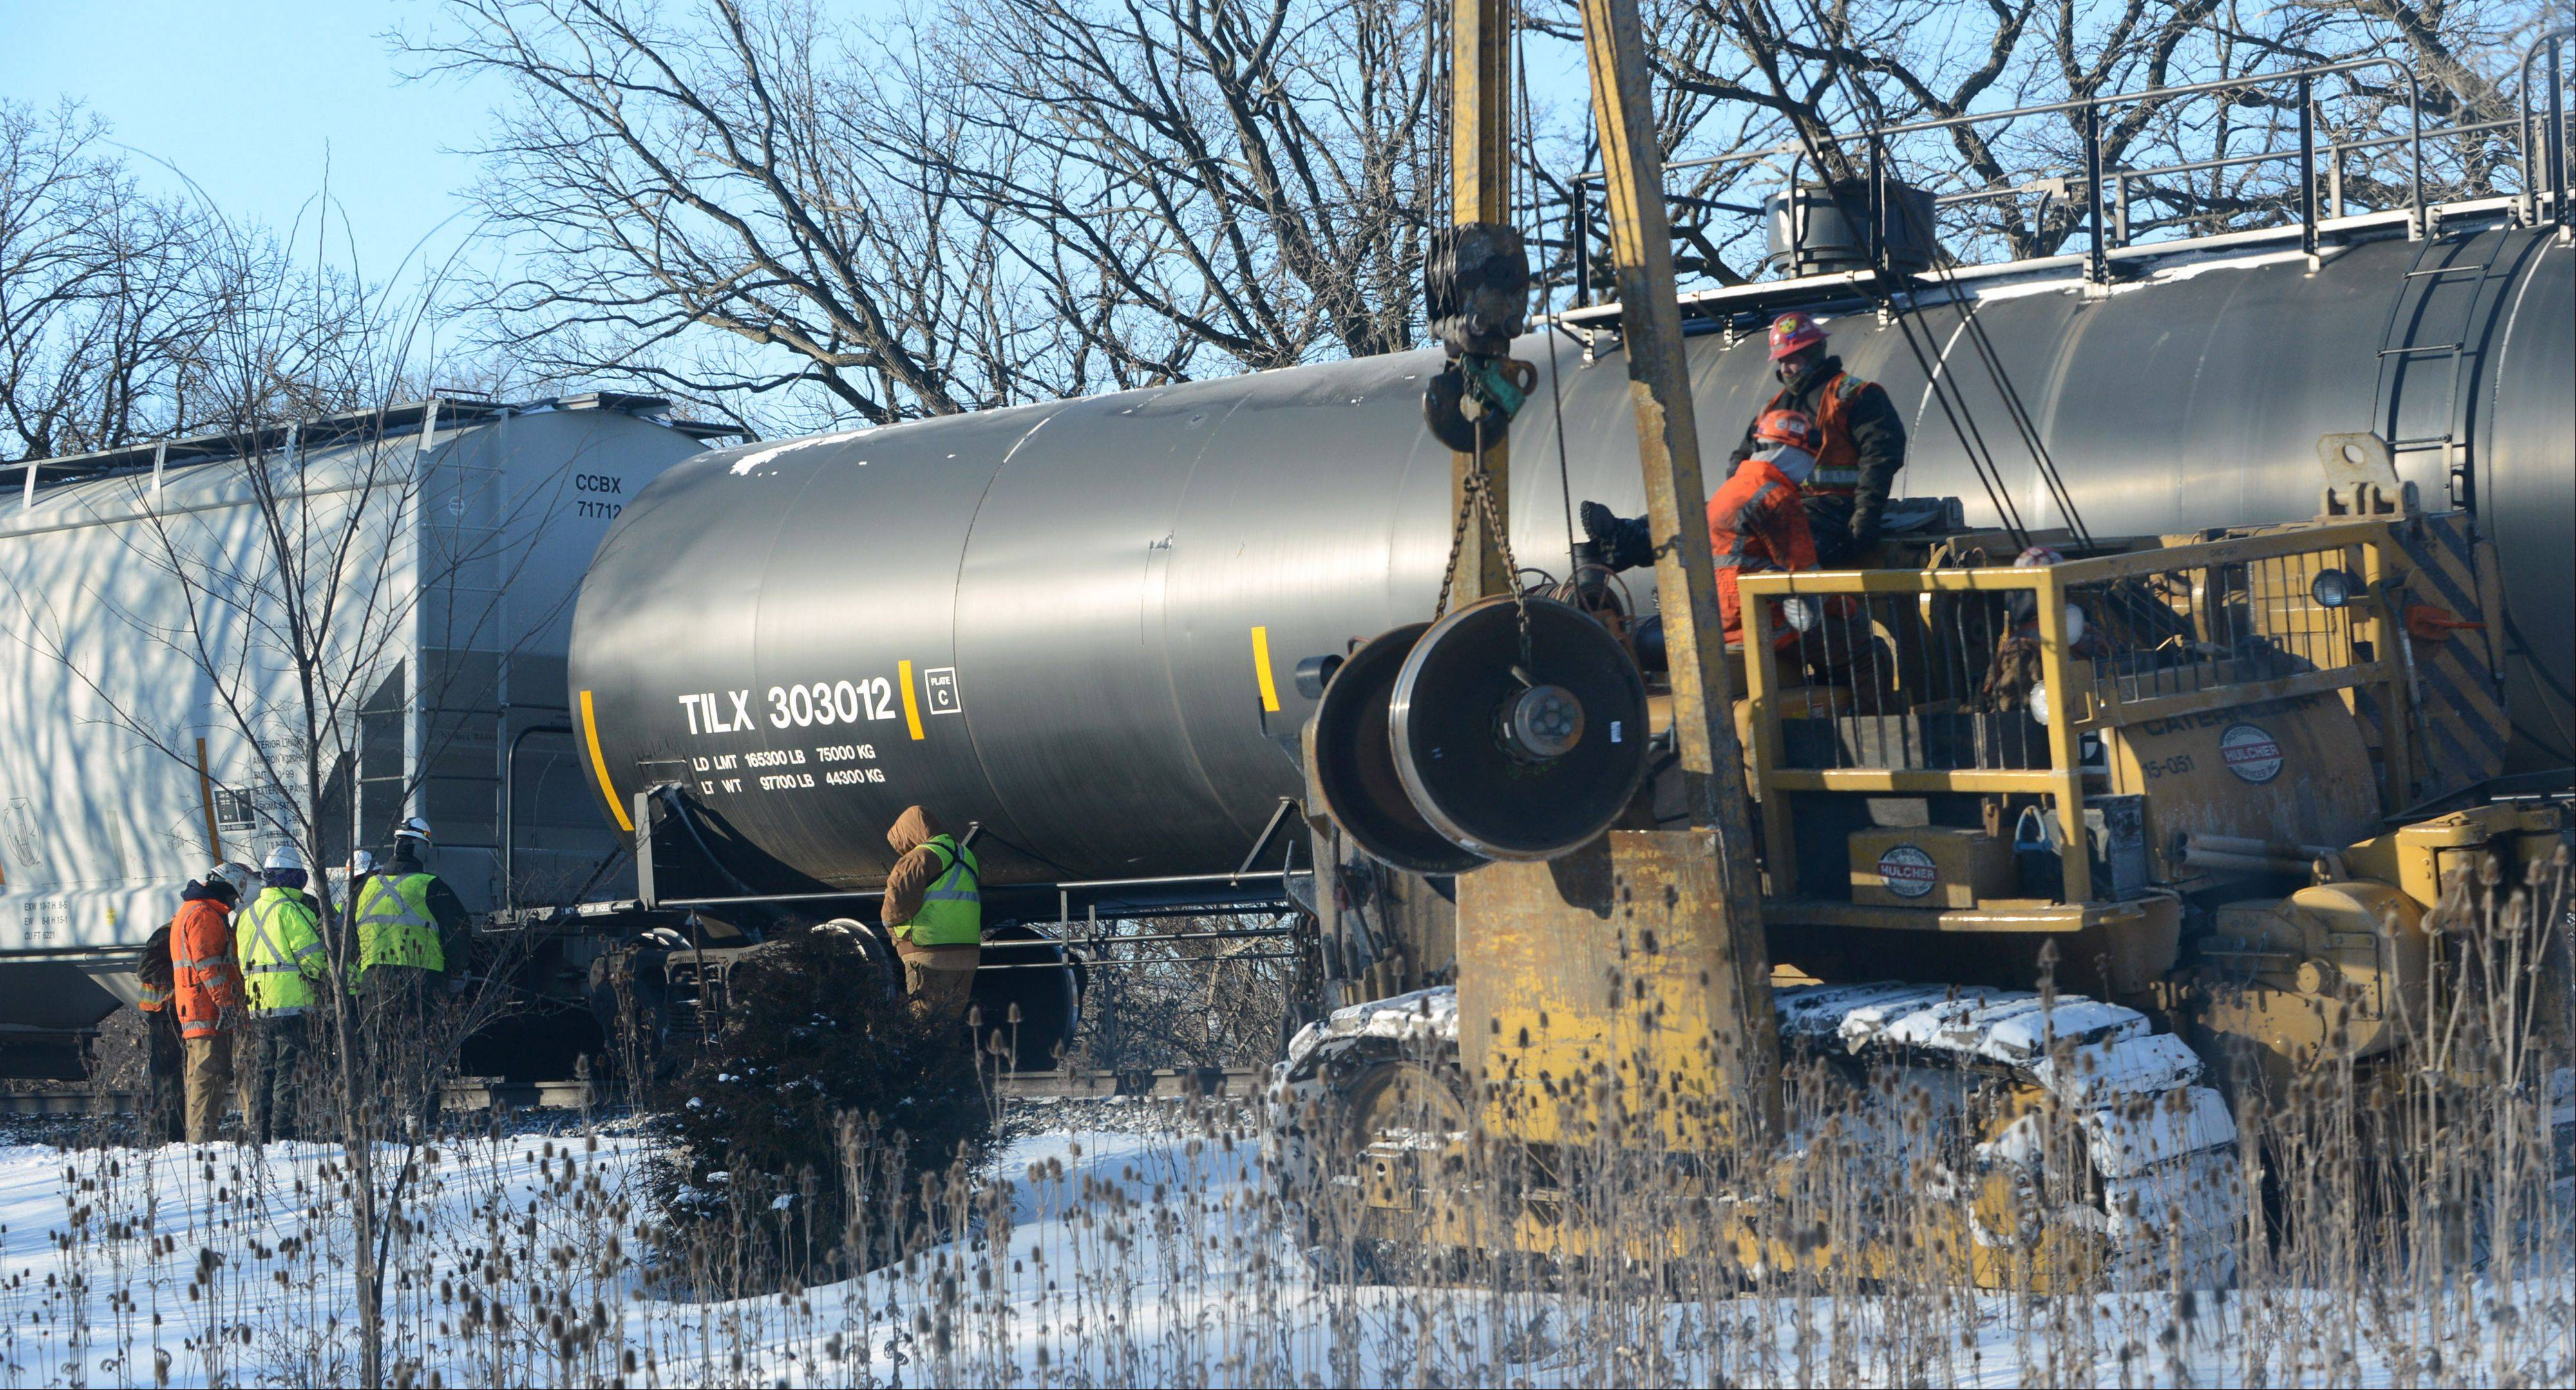 Canadian National crews work at a derailment at the Route 45 overpass between Route 176 and Winchester Road in Mundelein Tuesday morning. The derailment caused major delays for Metra commuters.